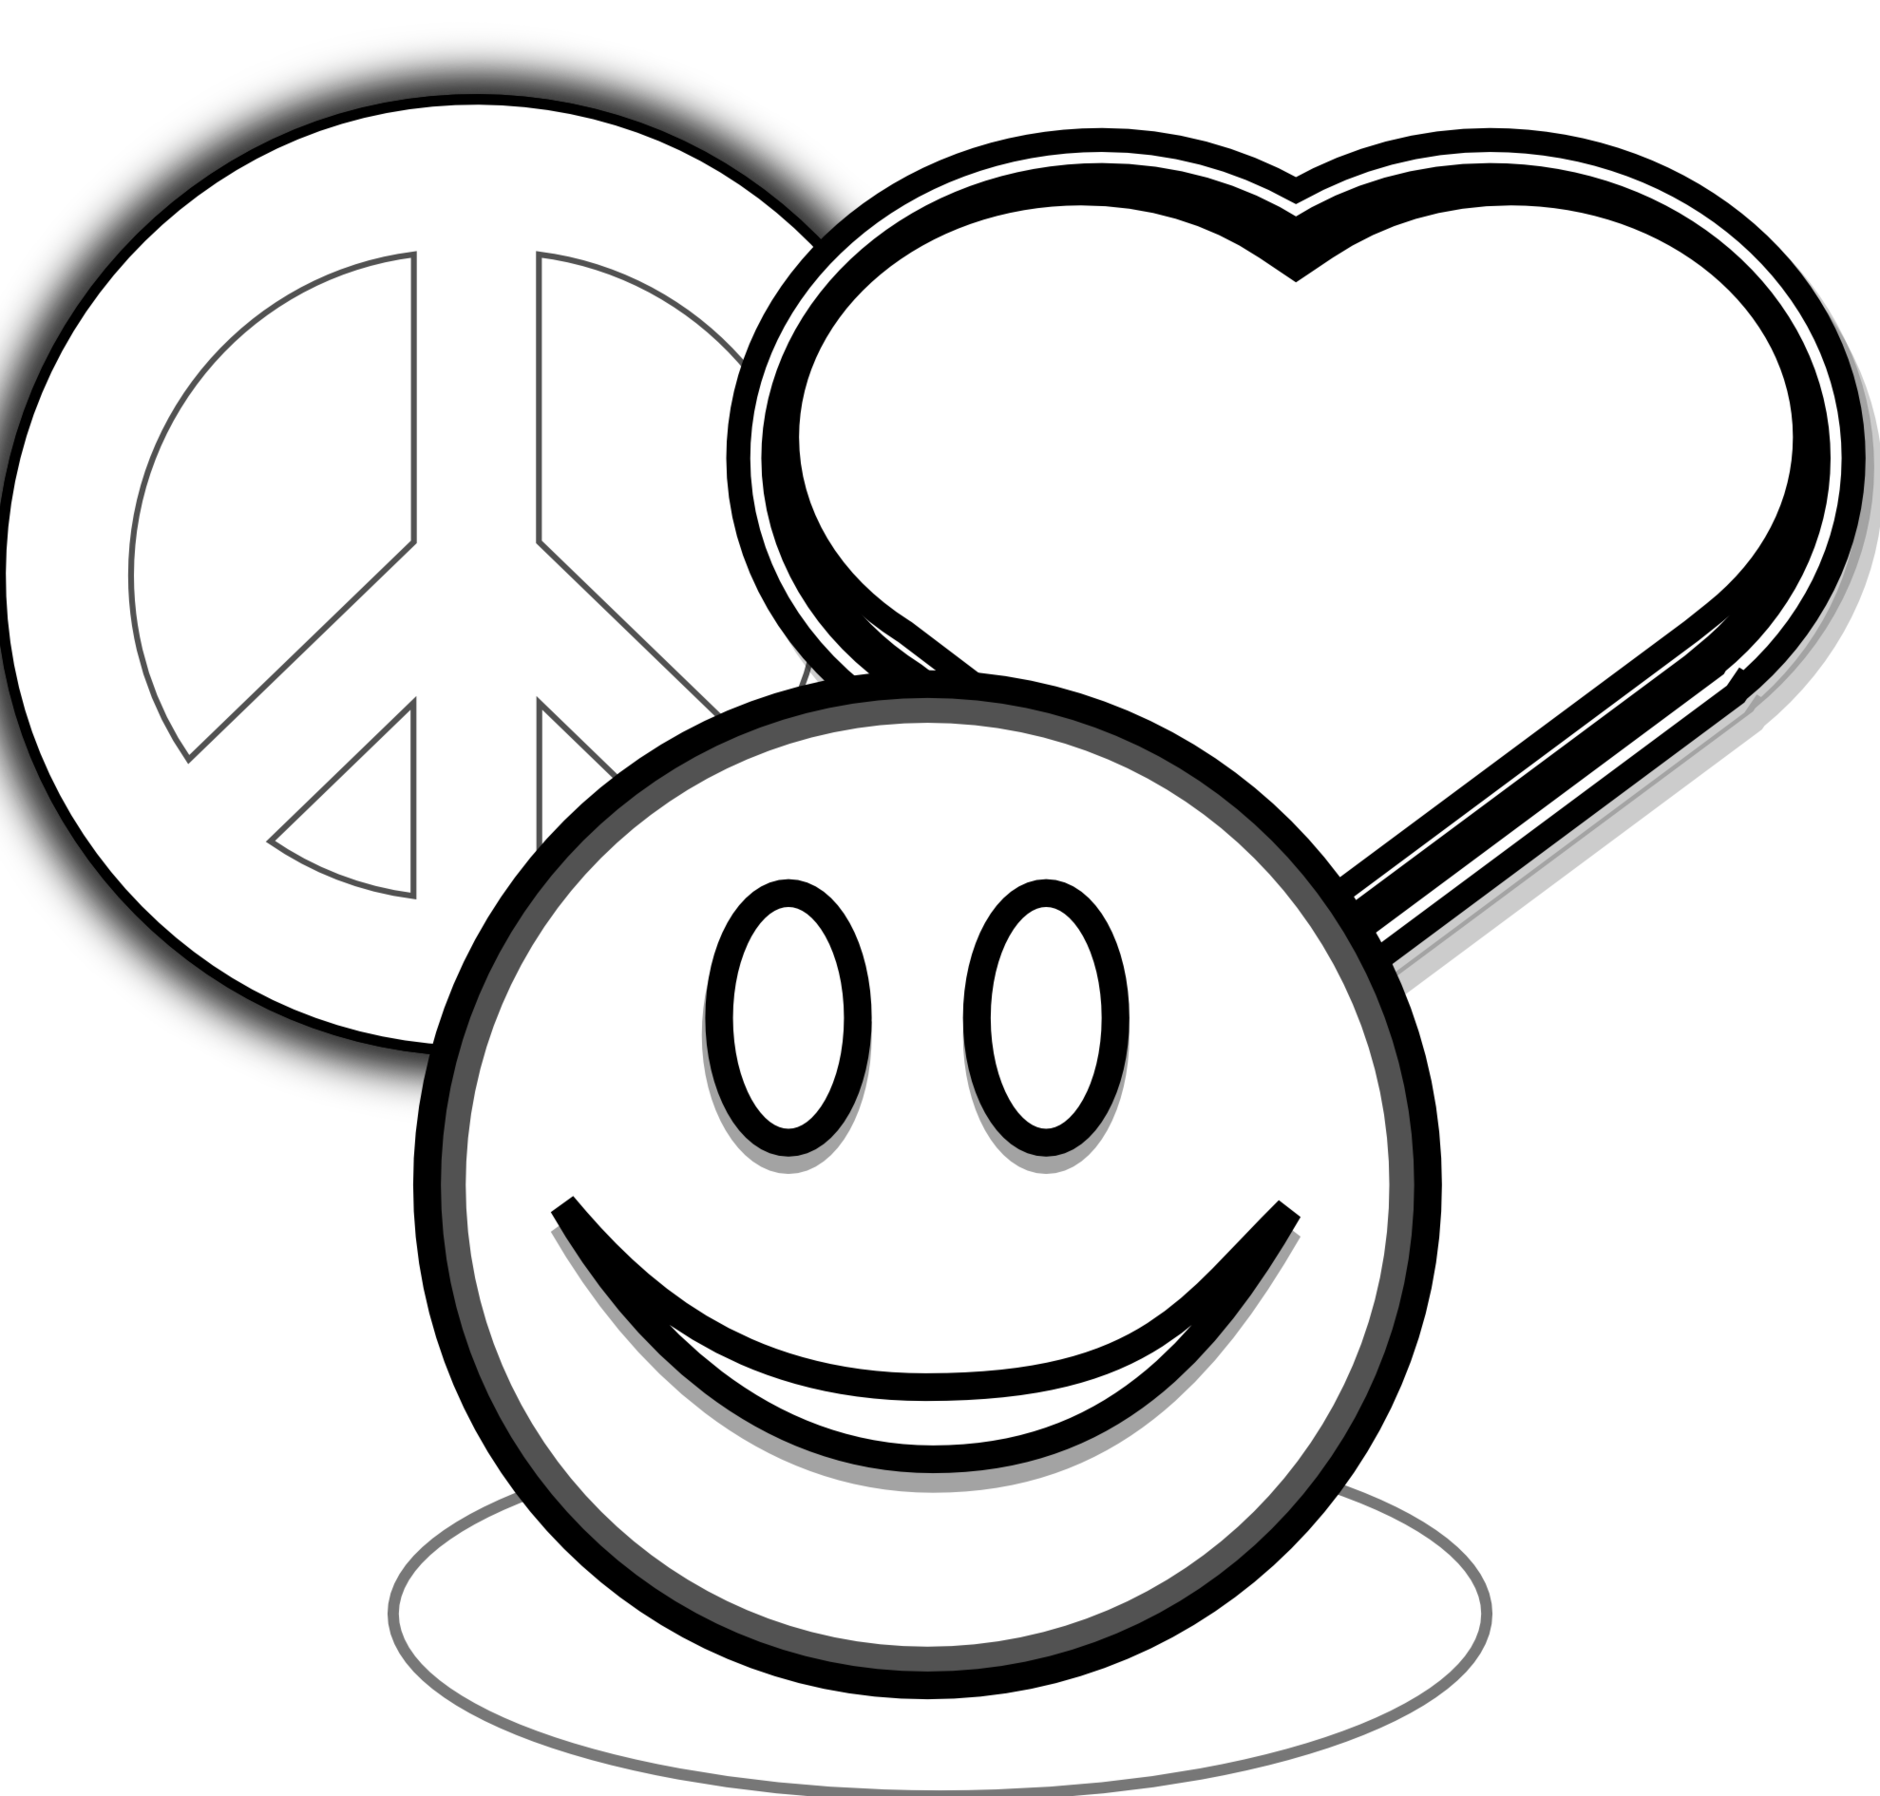 1880x1796 printable peace love and happiness coloring pages many interesting